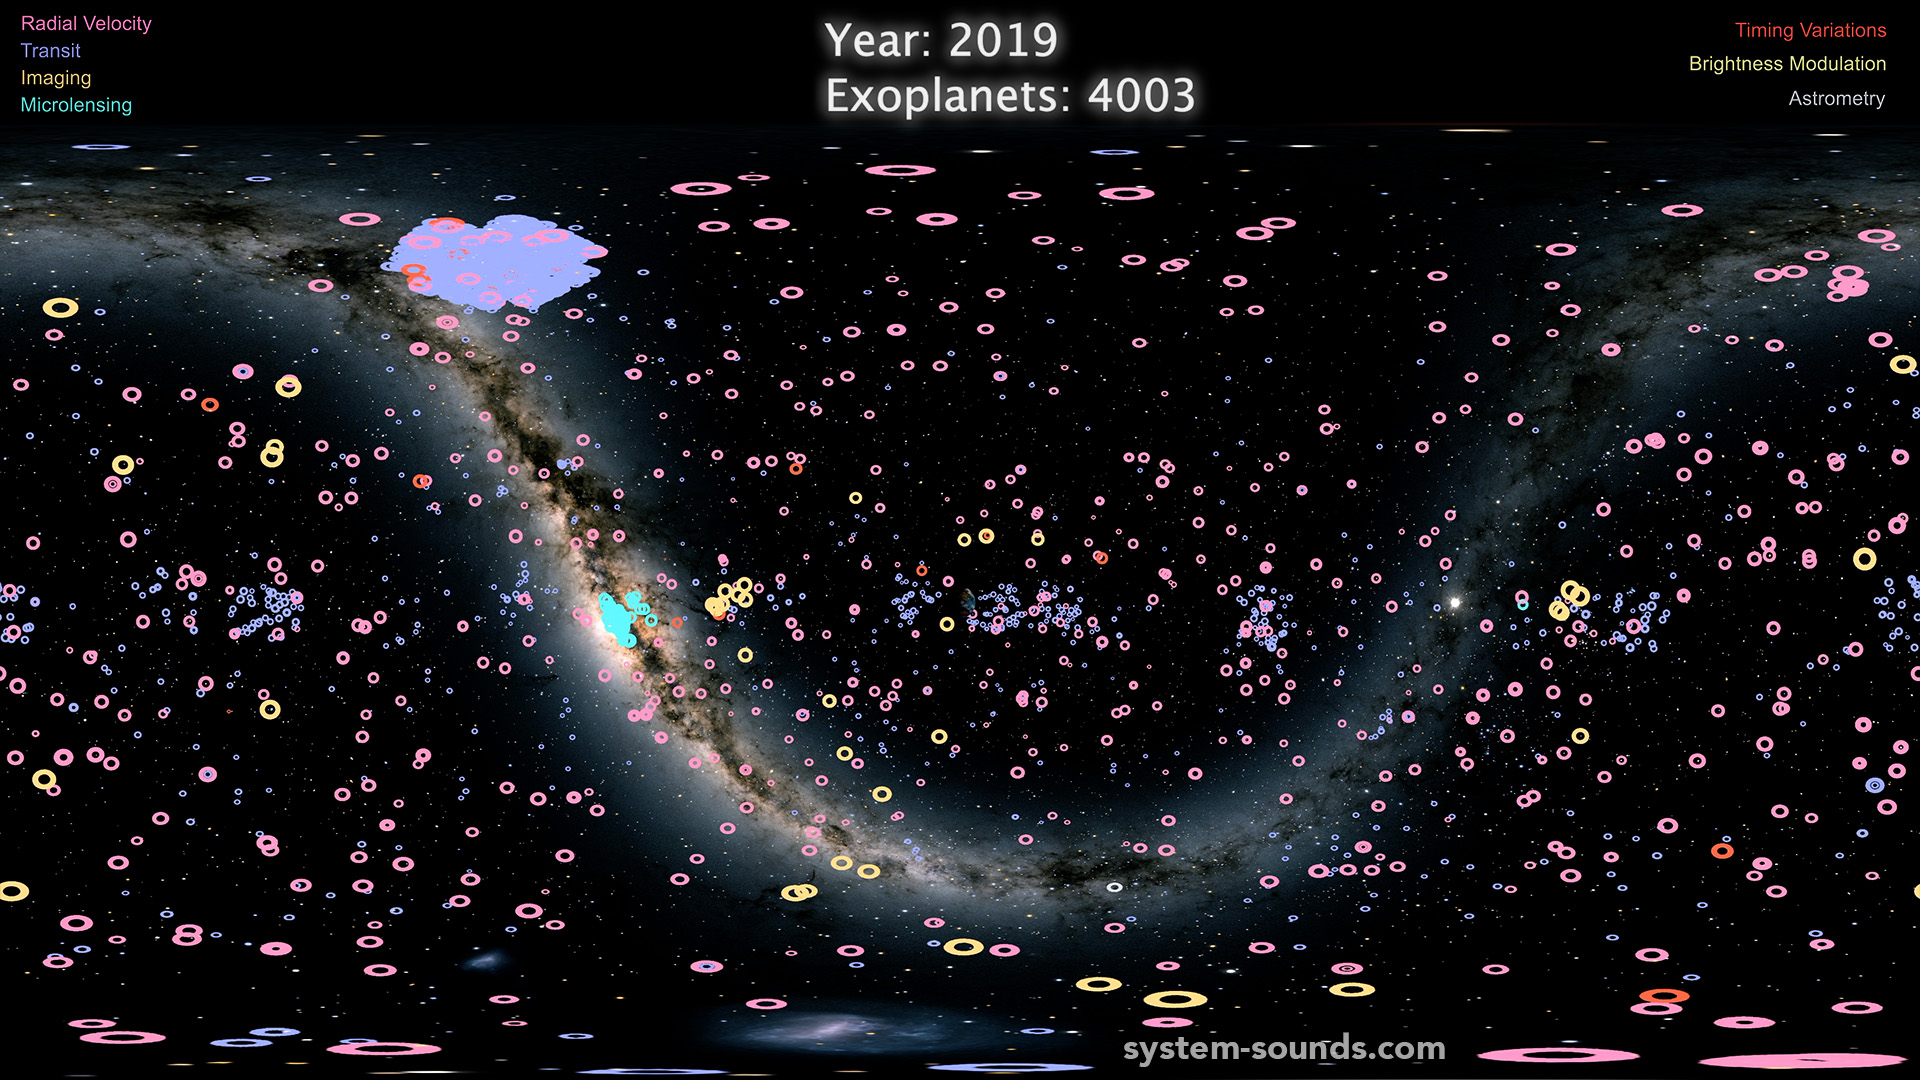 Full sky map of known exoplanets